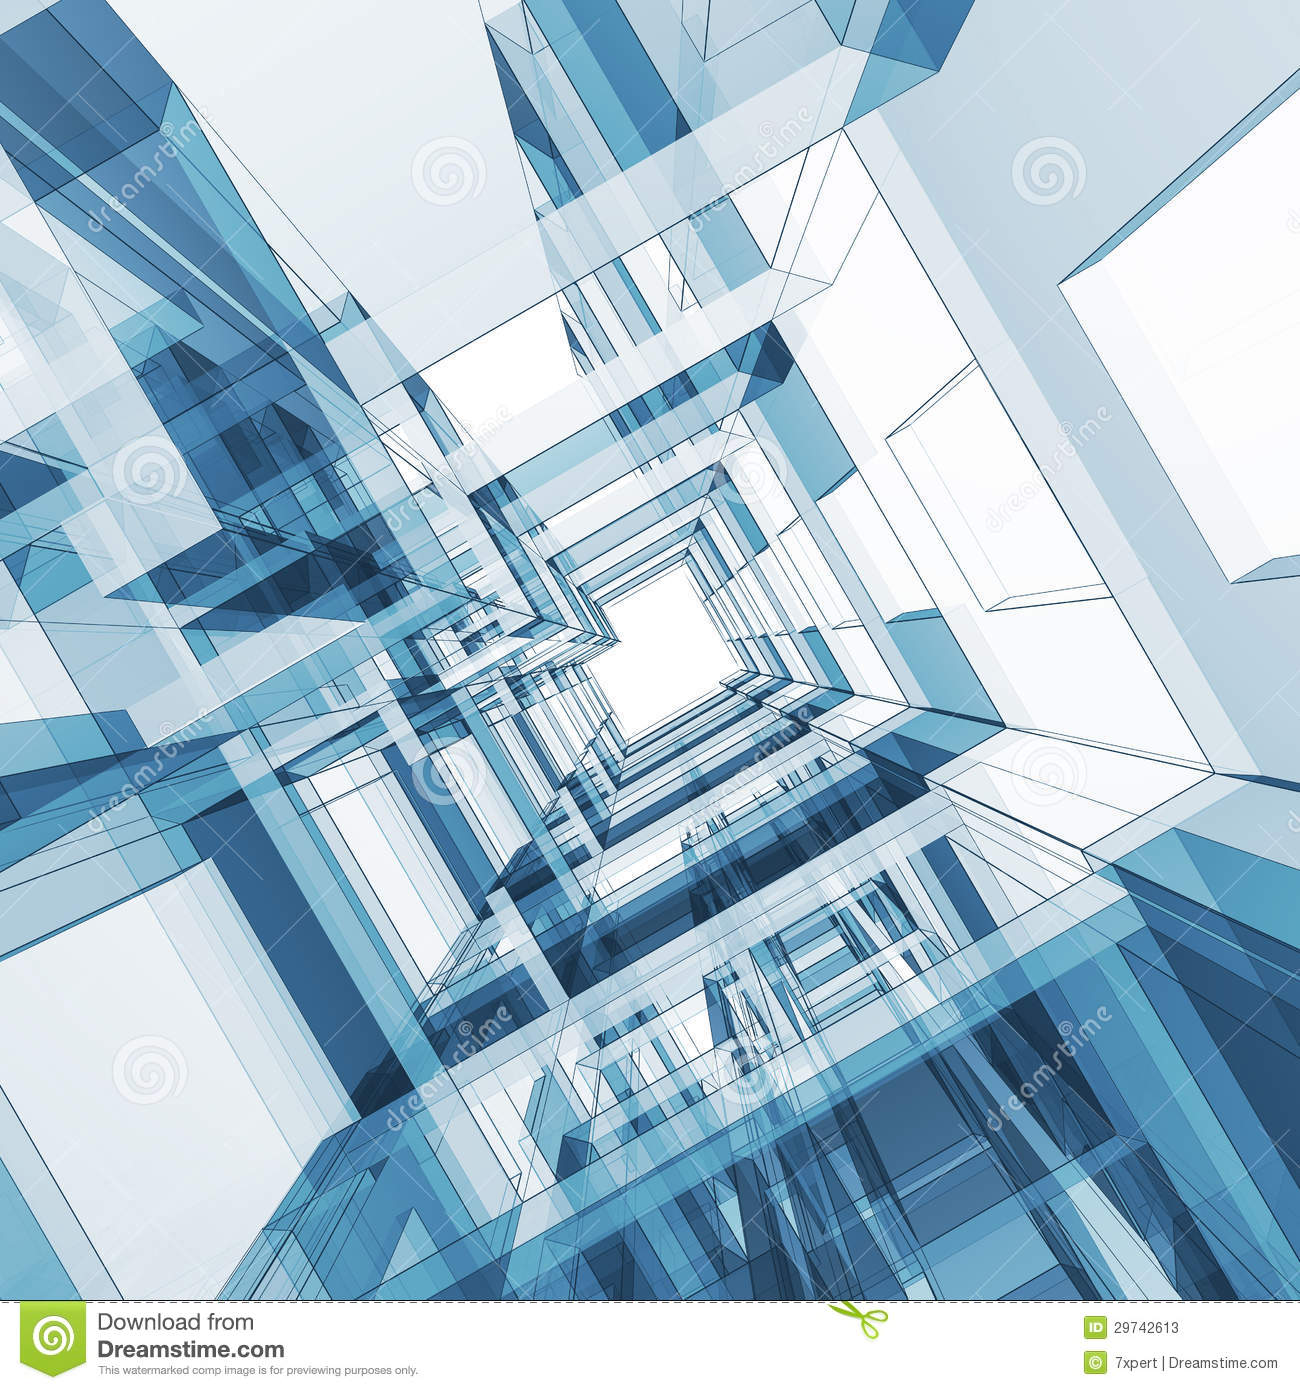 Abstract architecture stock photos image 29742613 for Programas para arquitectura 3d